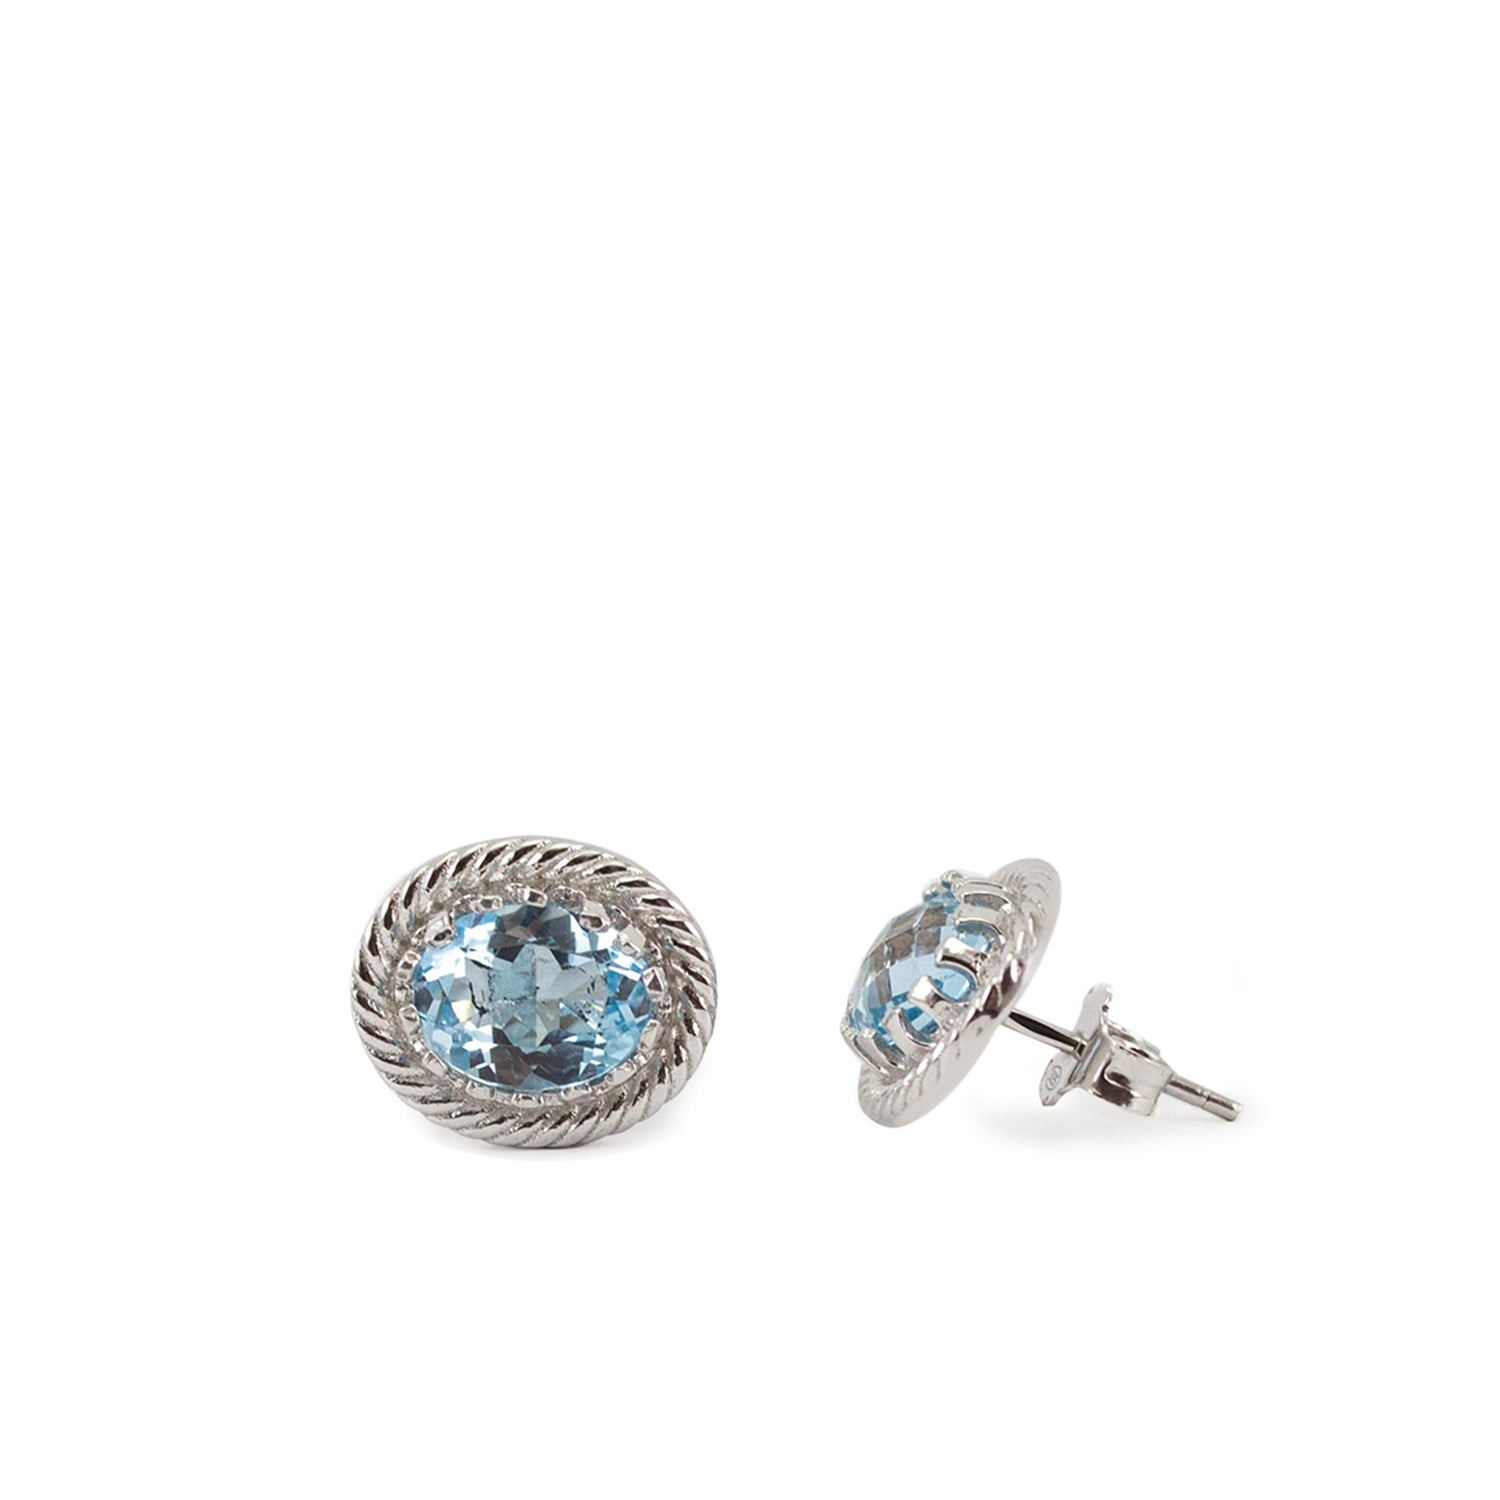 Luccichio Blue Topaz Silver Stud Earrings